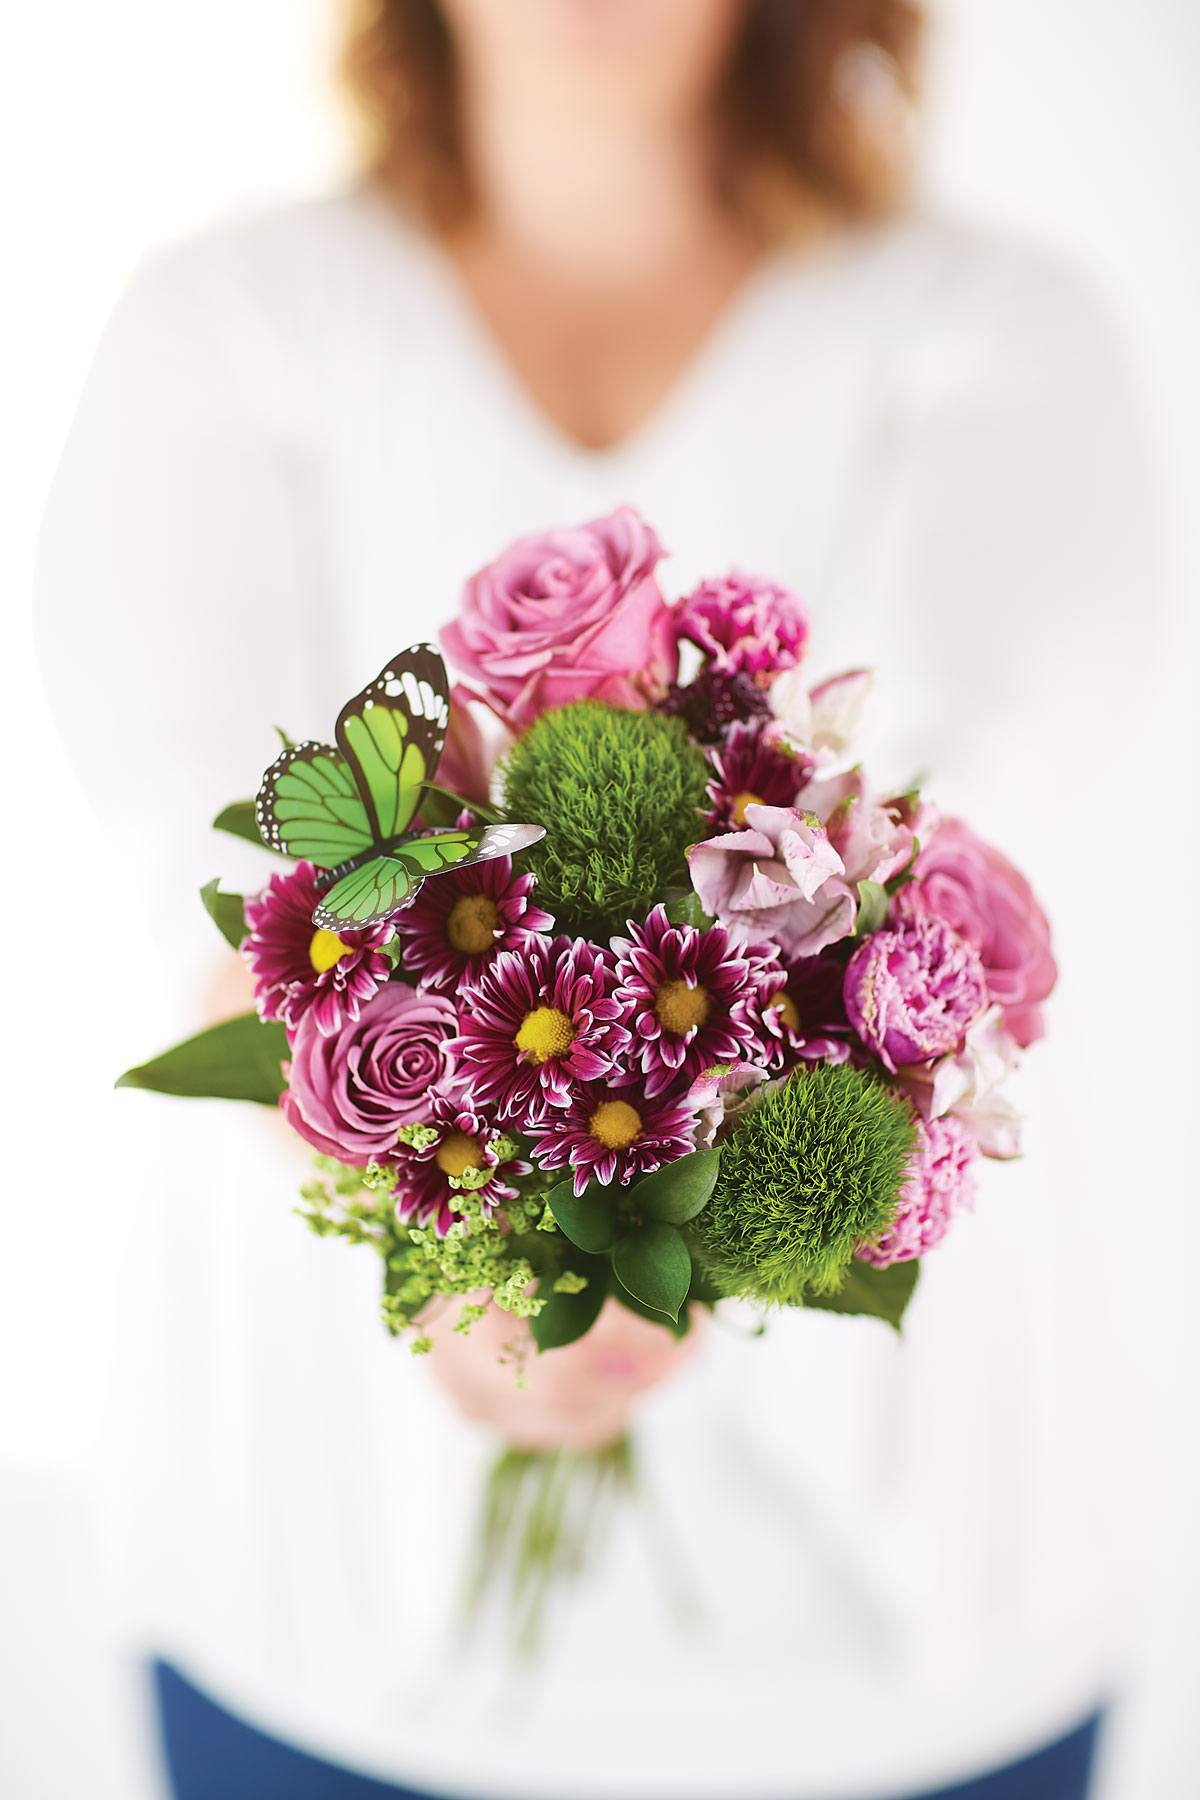 Floral - Mother's Day - Celebrate Mom